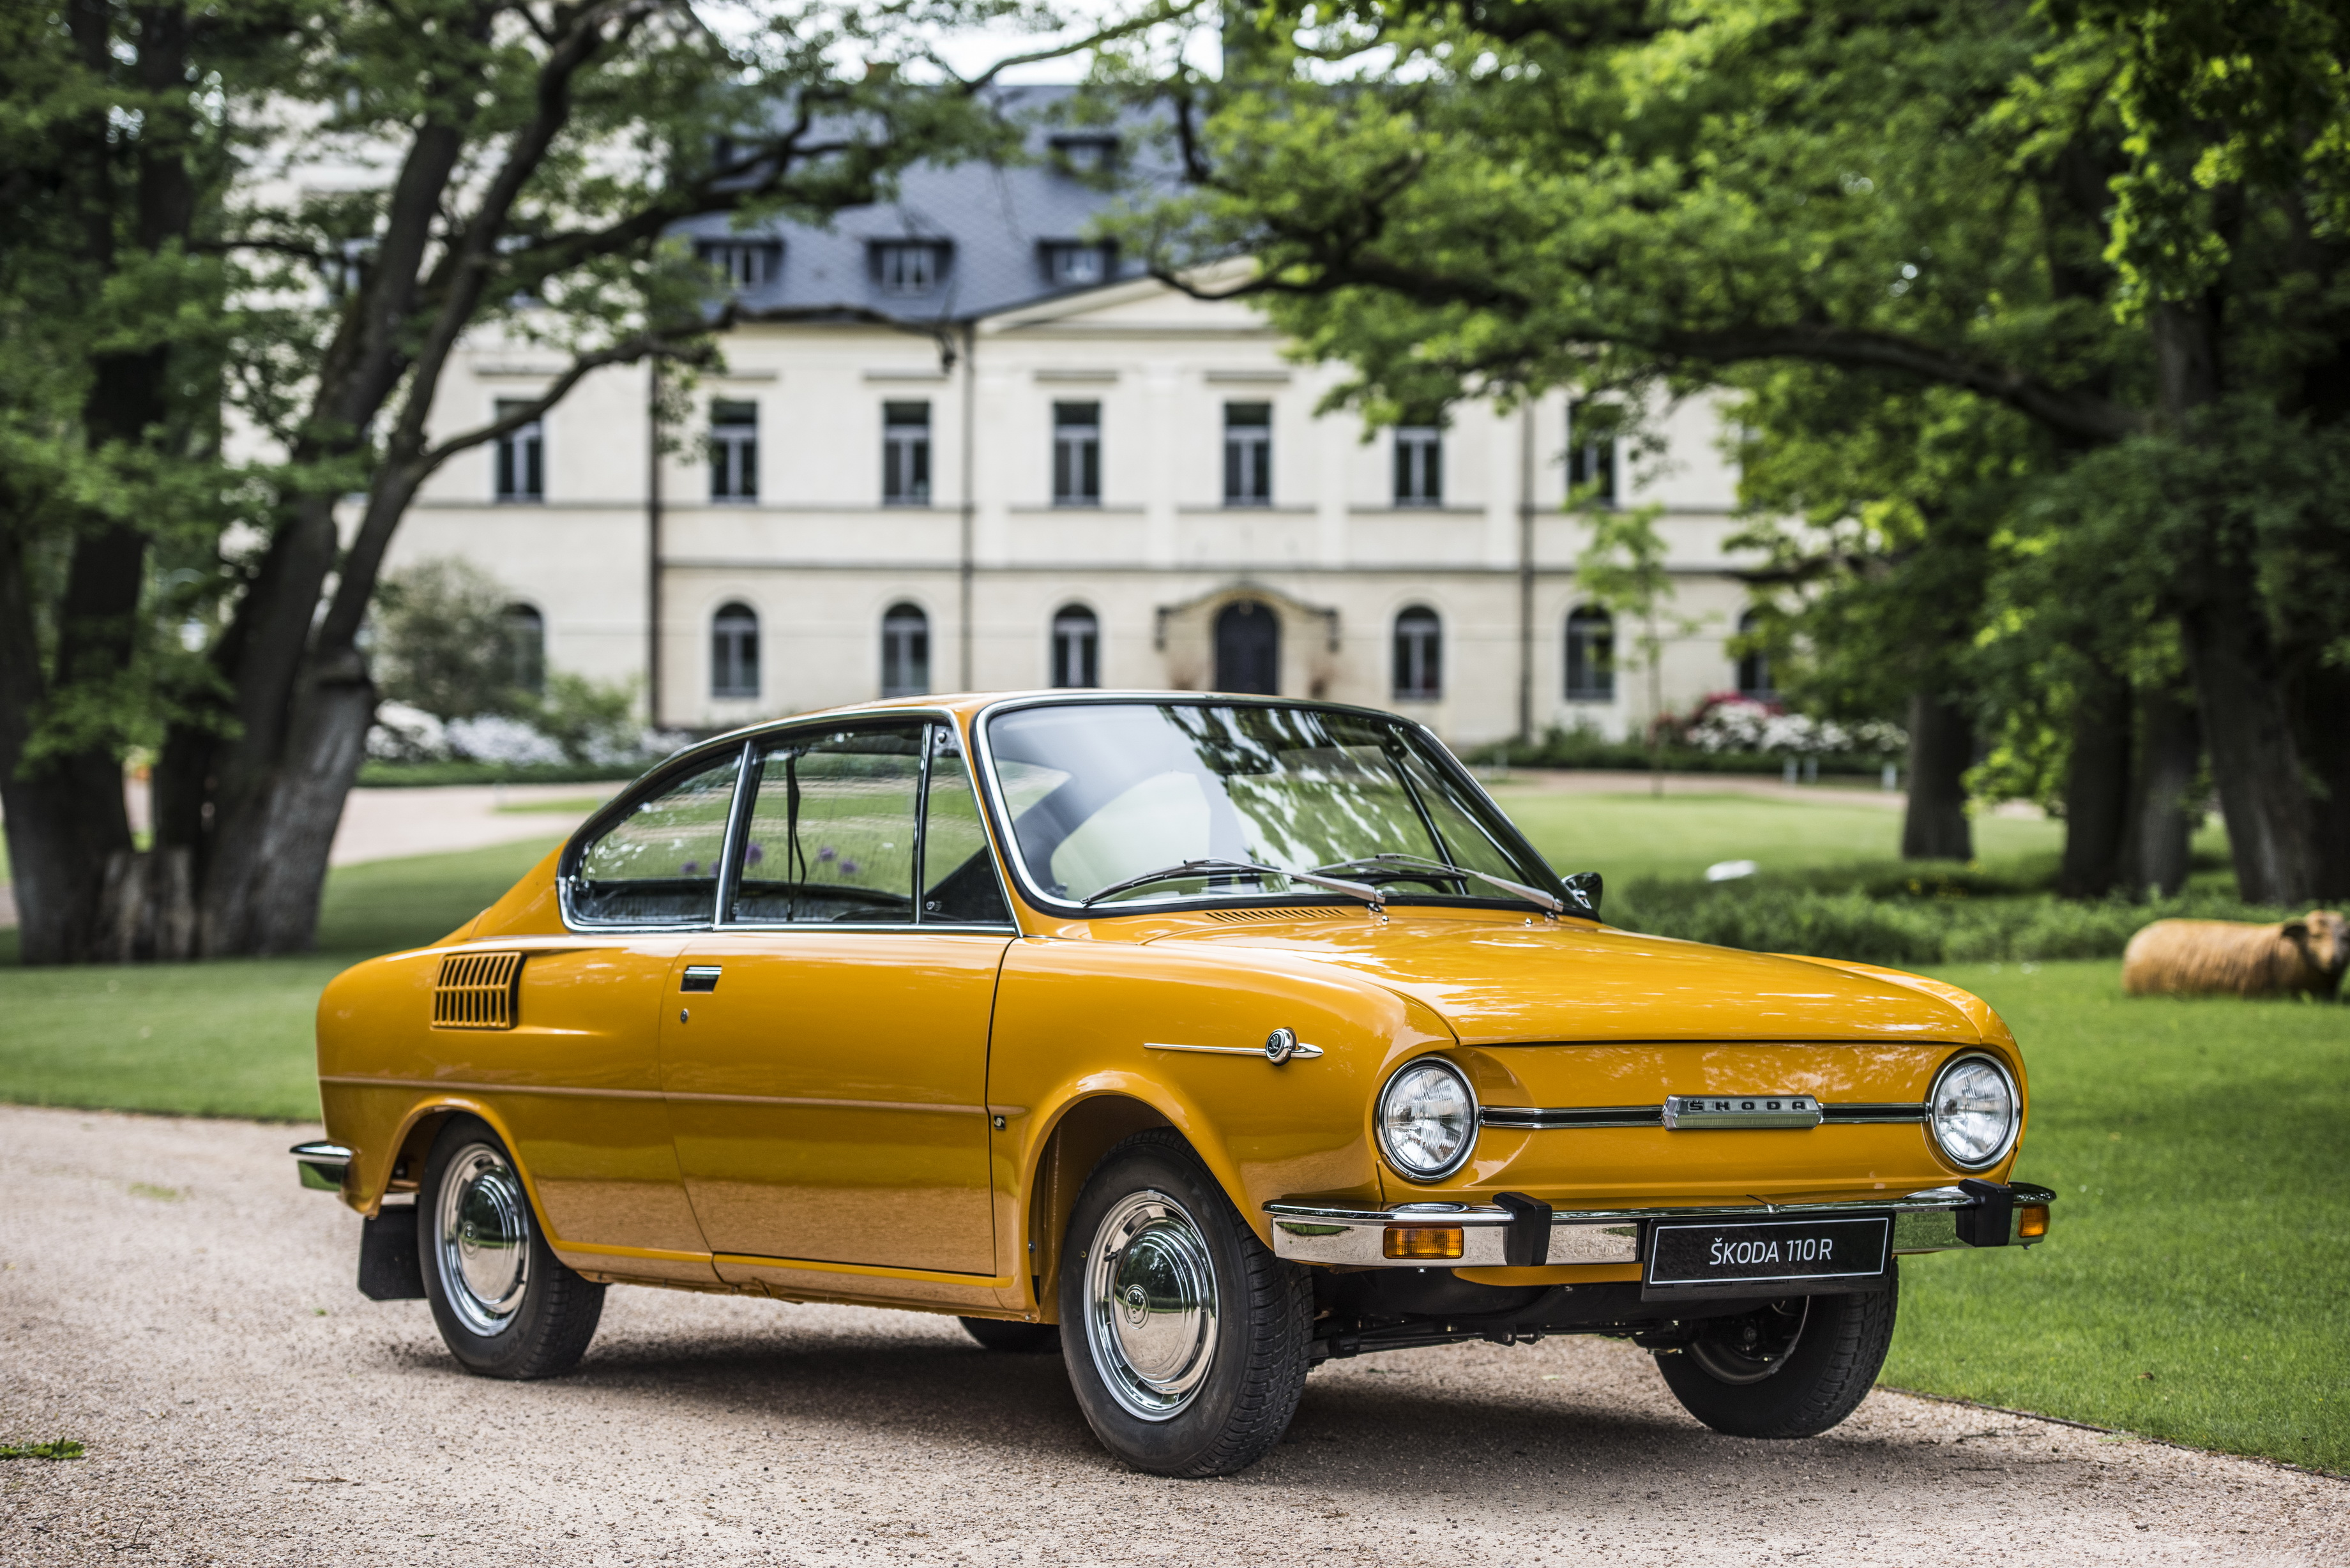 50 years of the 110 R: Half a century ago, SKODA presented its legendary sports coupé - Image 8